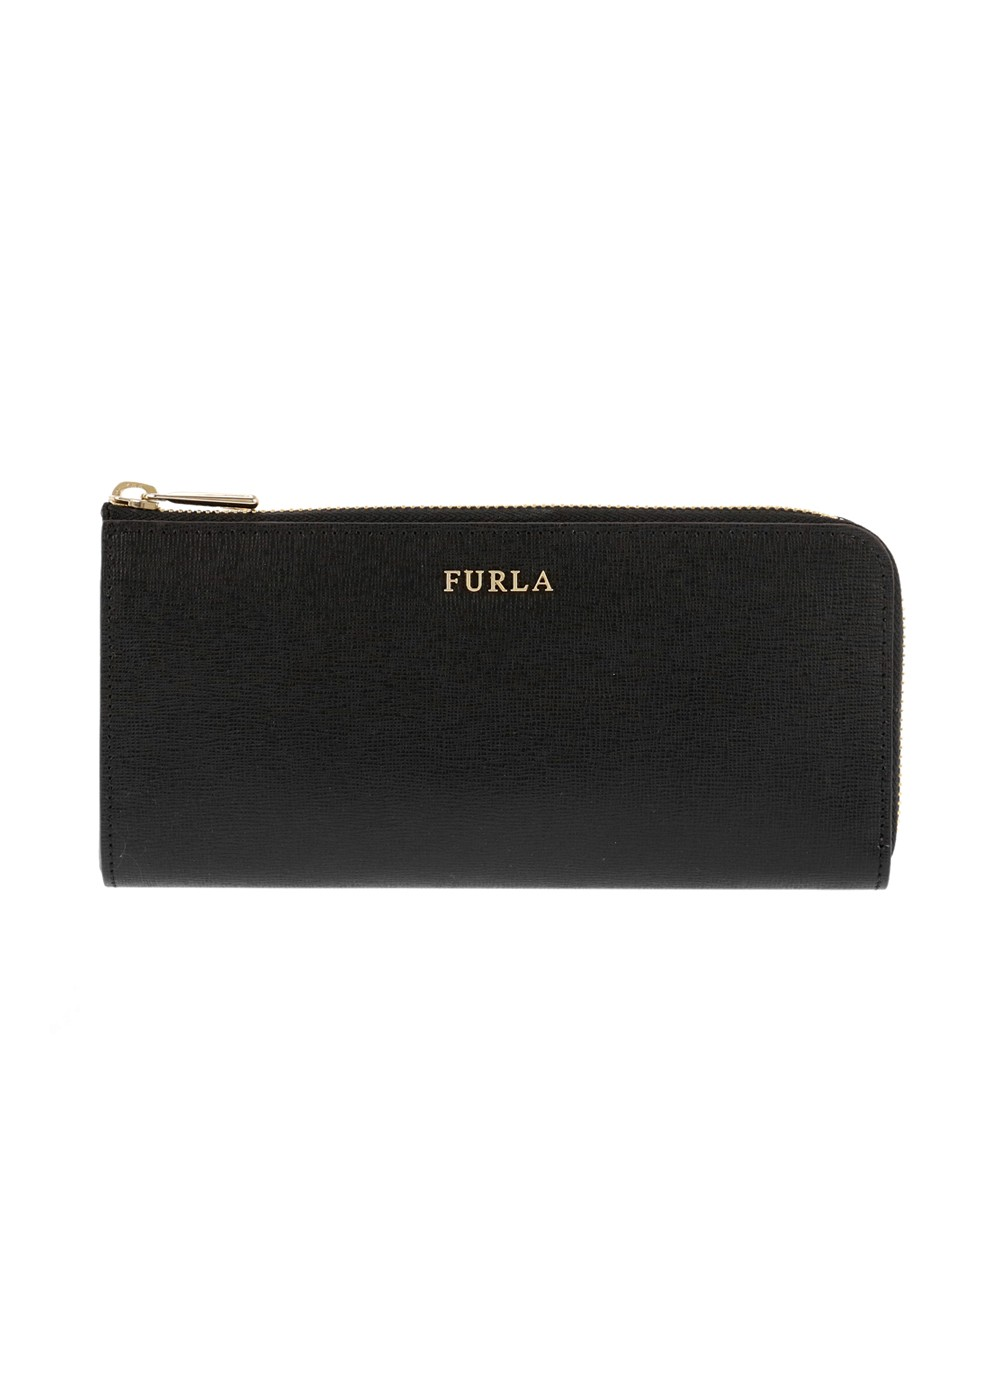 【最大50%OFF】BABYLON XL ZIP AROUND L【PS13】|ONXY|レディース財布|FURLA(U)